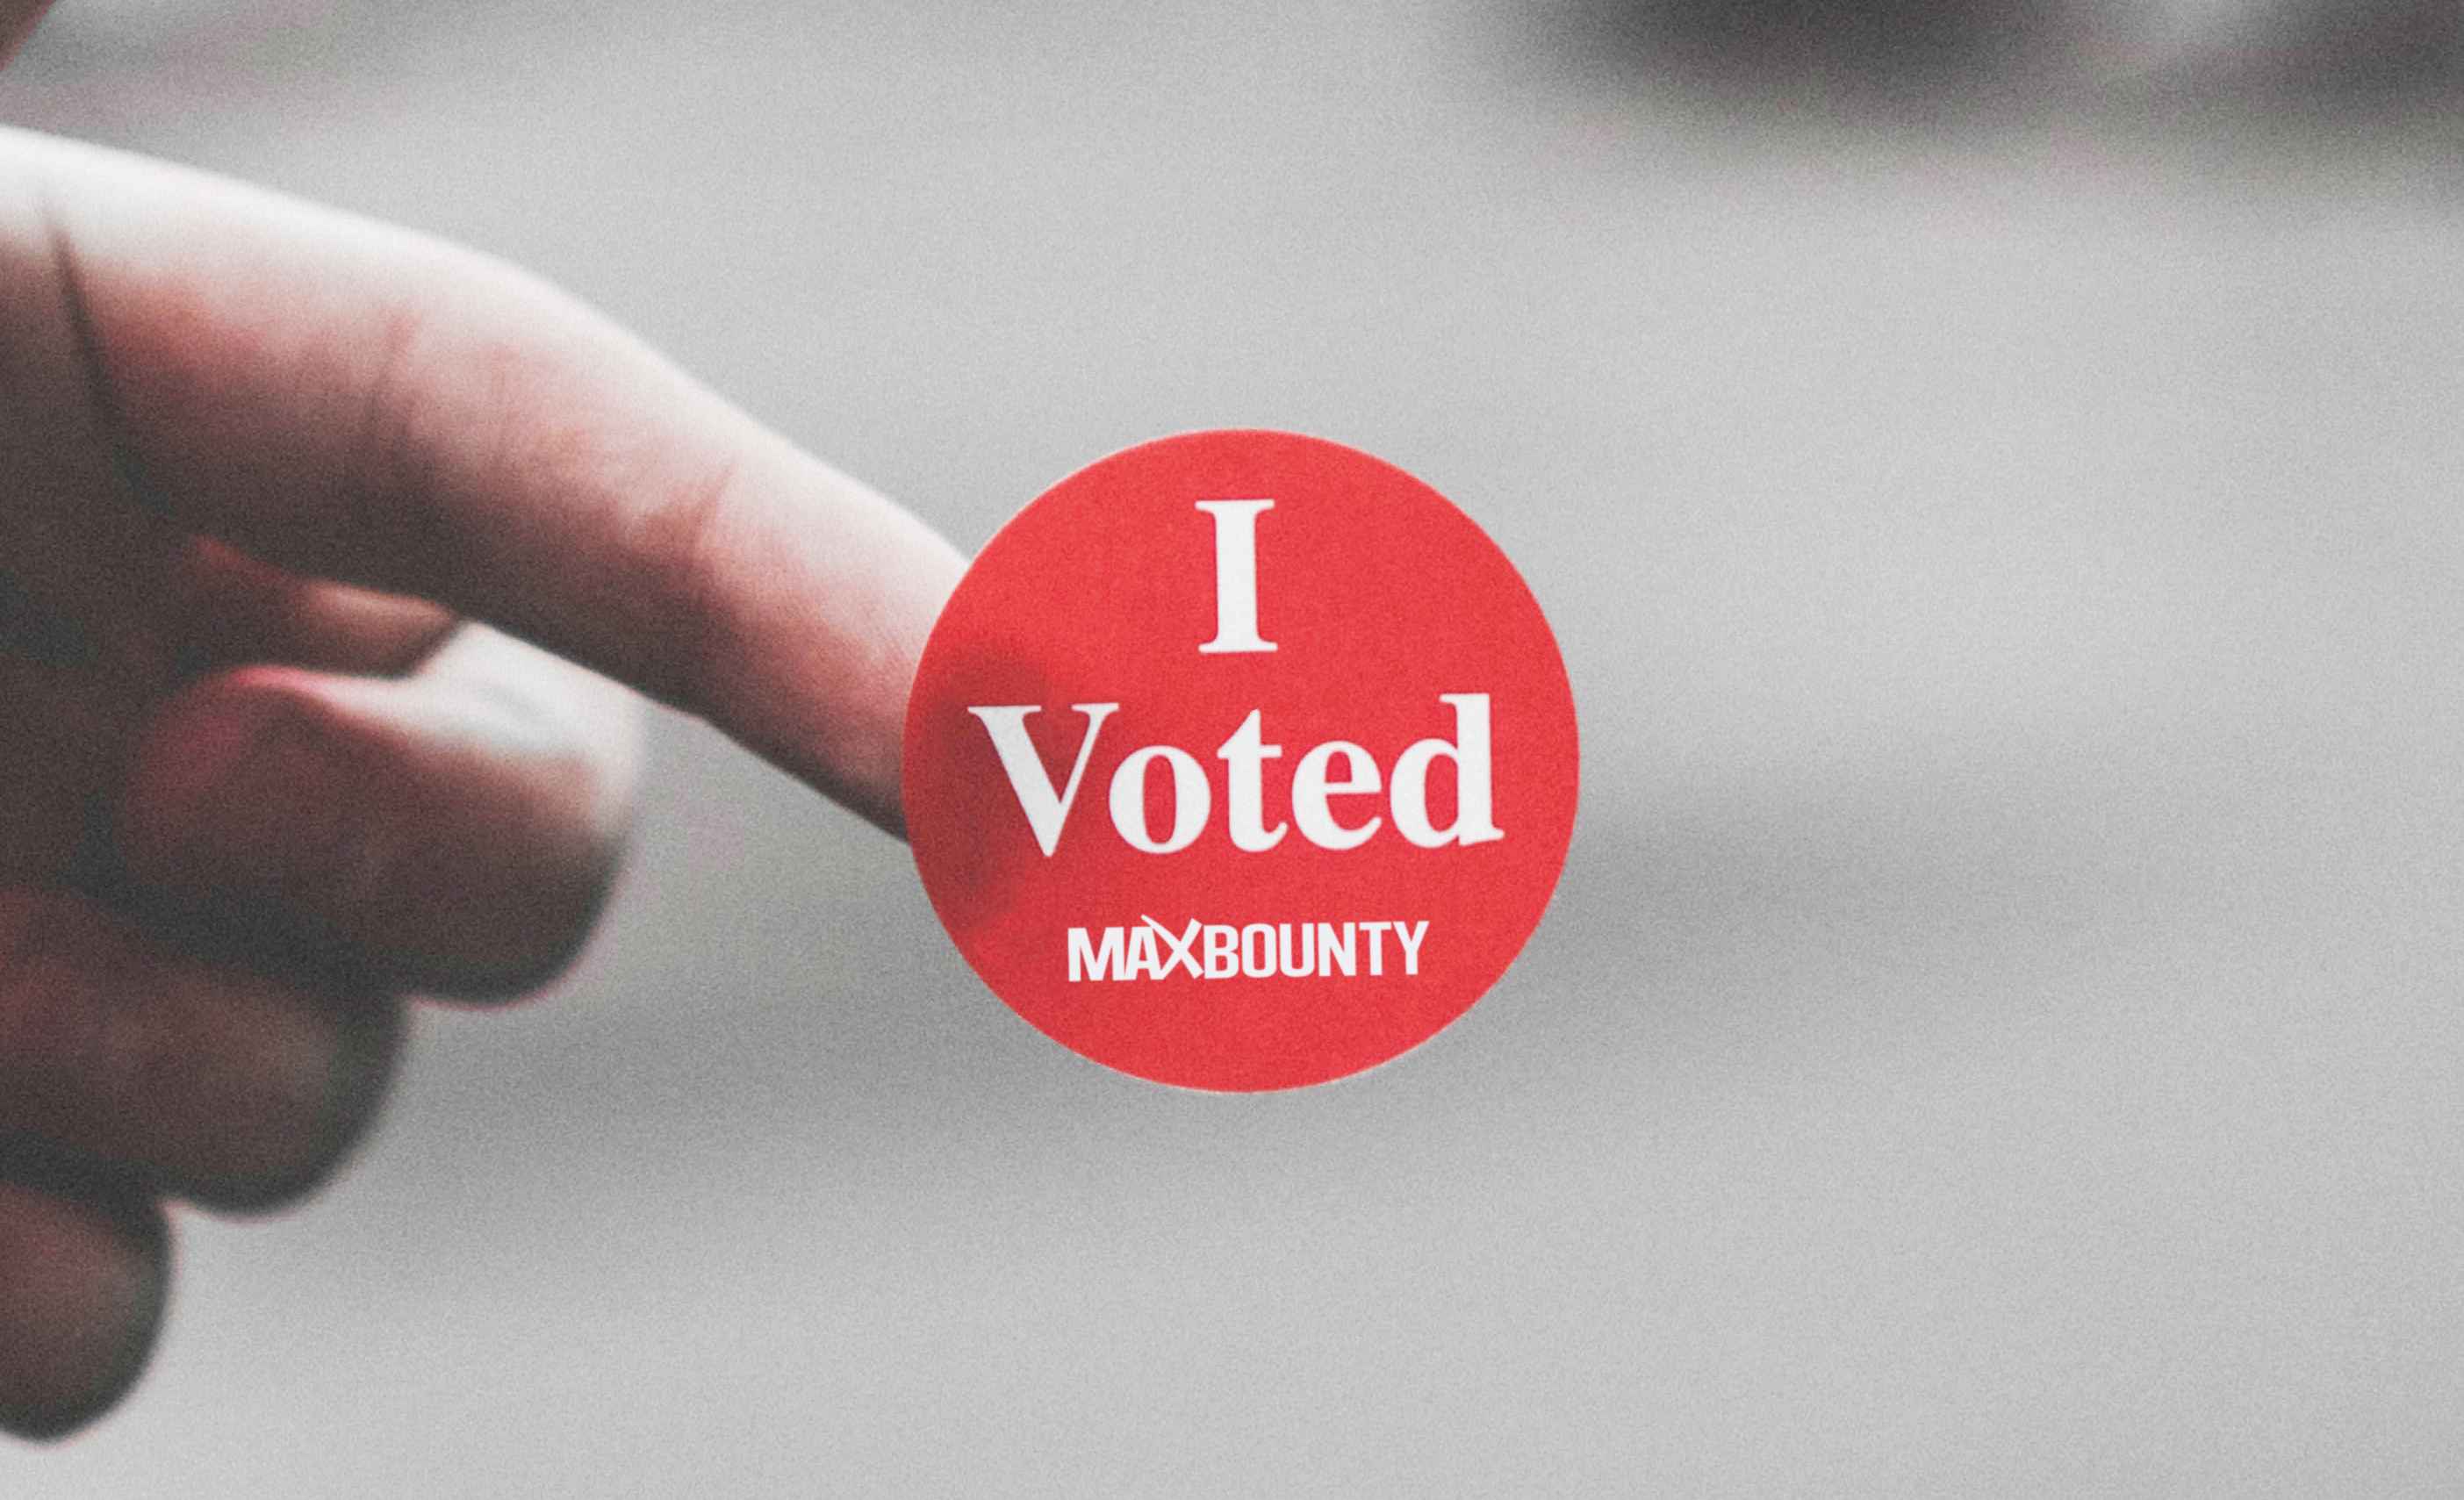 Watch: How to Vote for MaxBounty in Just 30 Seconds